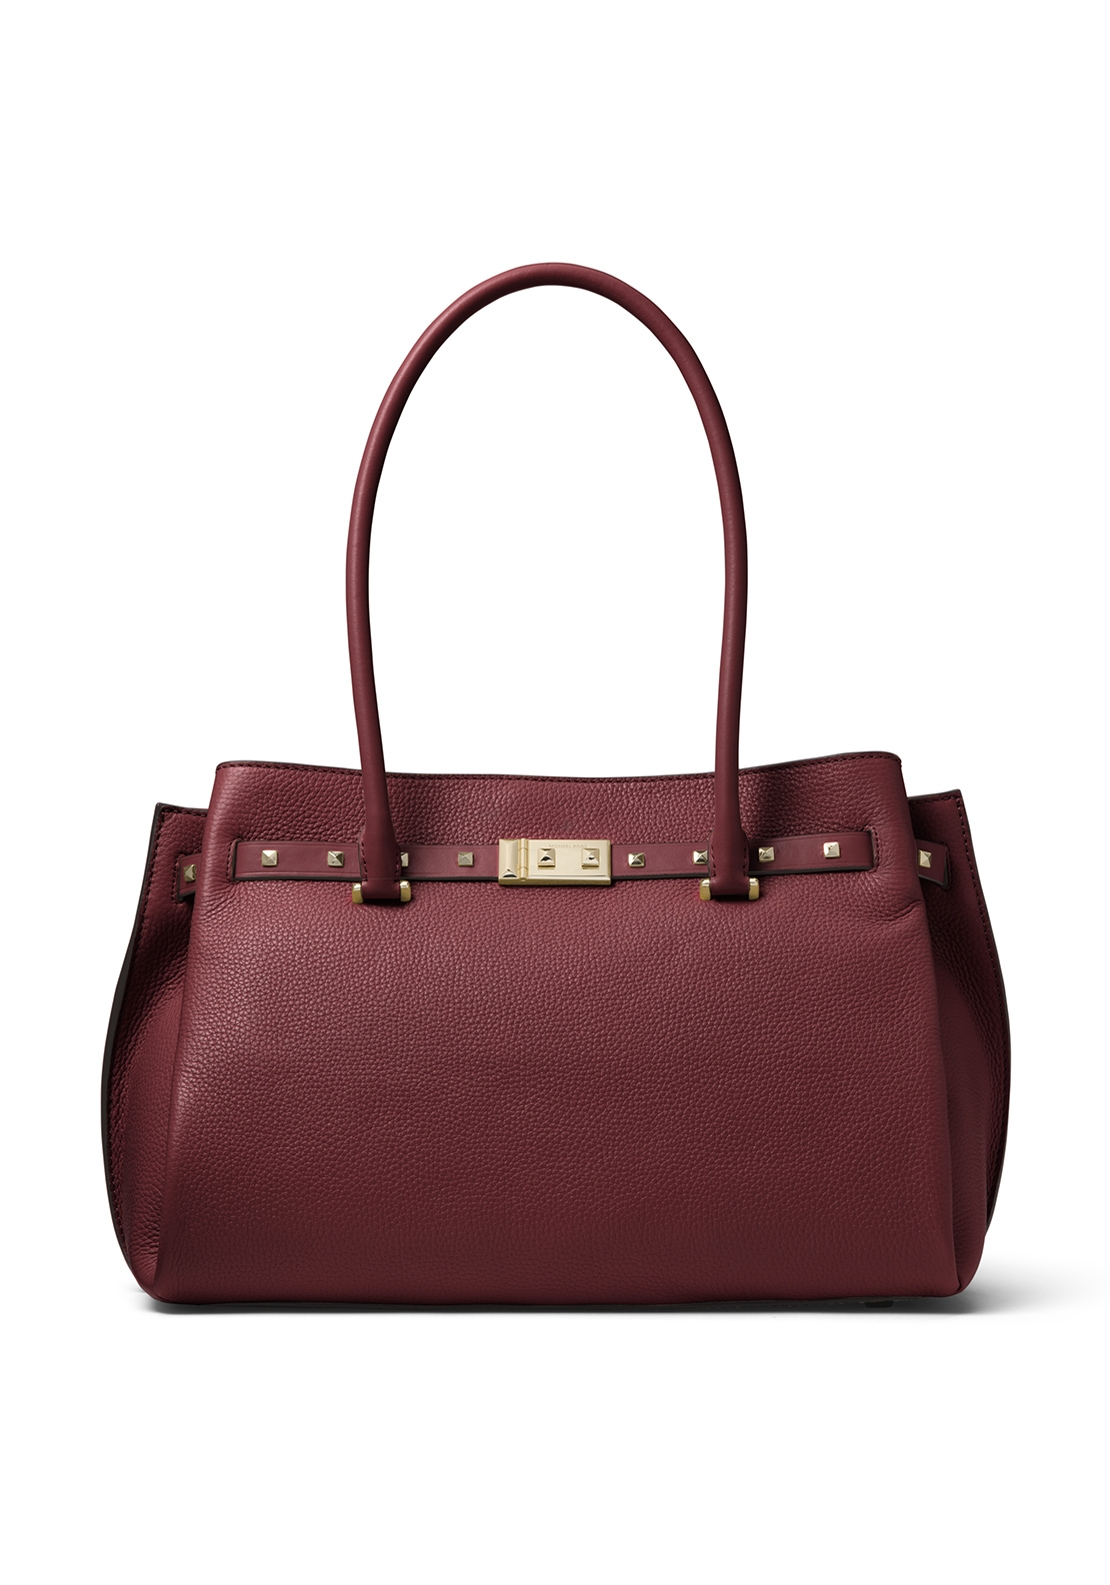 a46a06f5a656 ... Oxblood MICHAEL Michael Kors Addison Large Leather Tote Bag, Oxblood